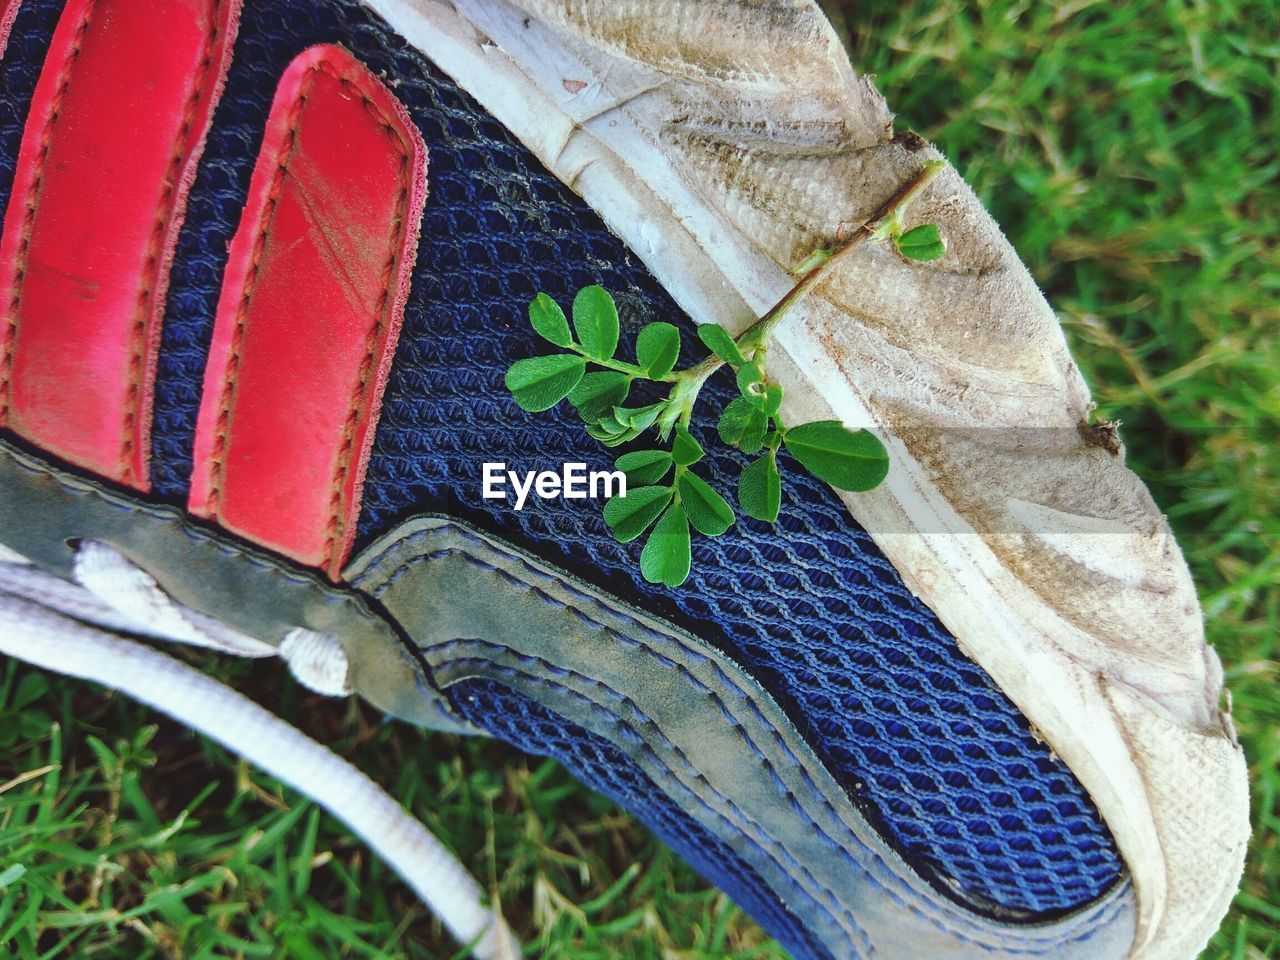 leaf, plant, growth, day, outdoors, green color, no people, shoe, close-up, nature